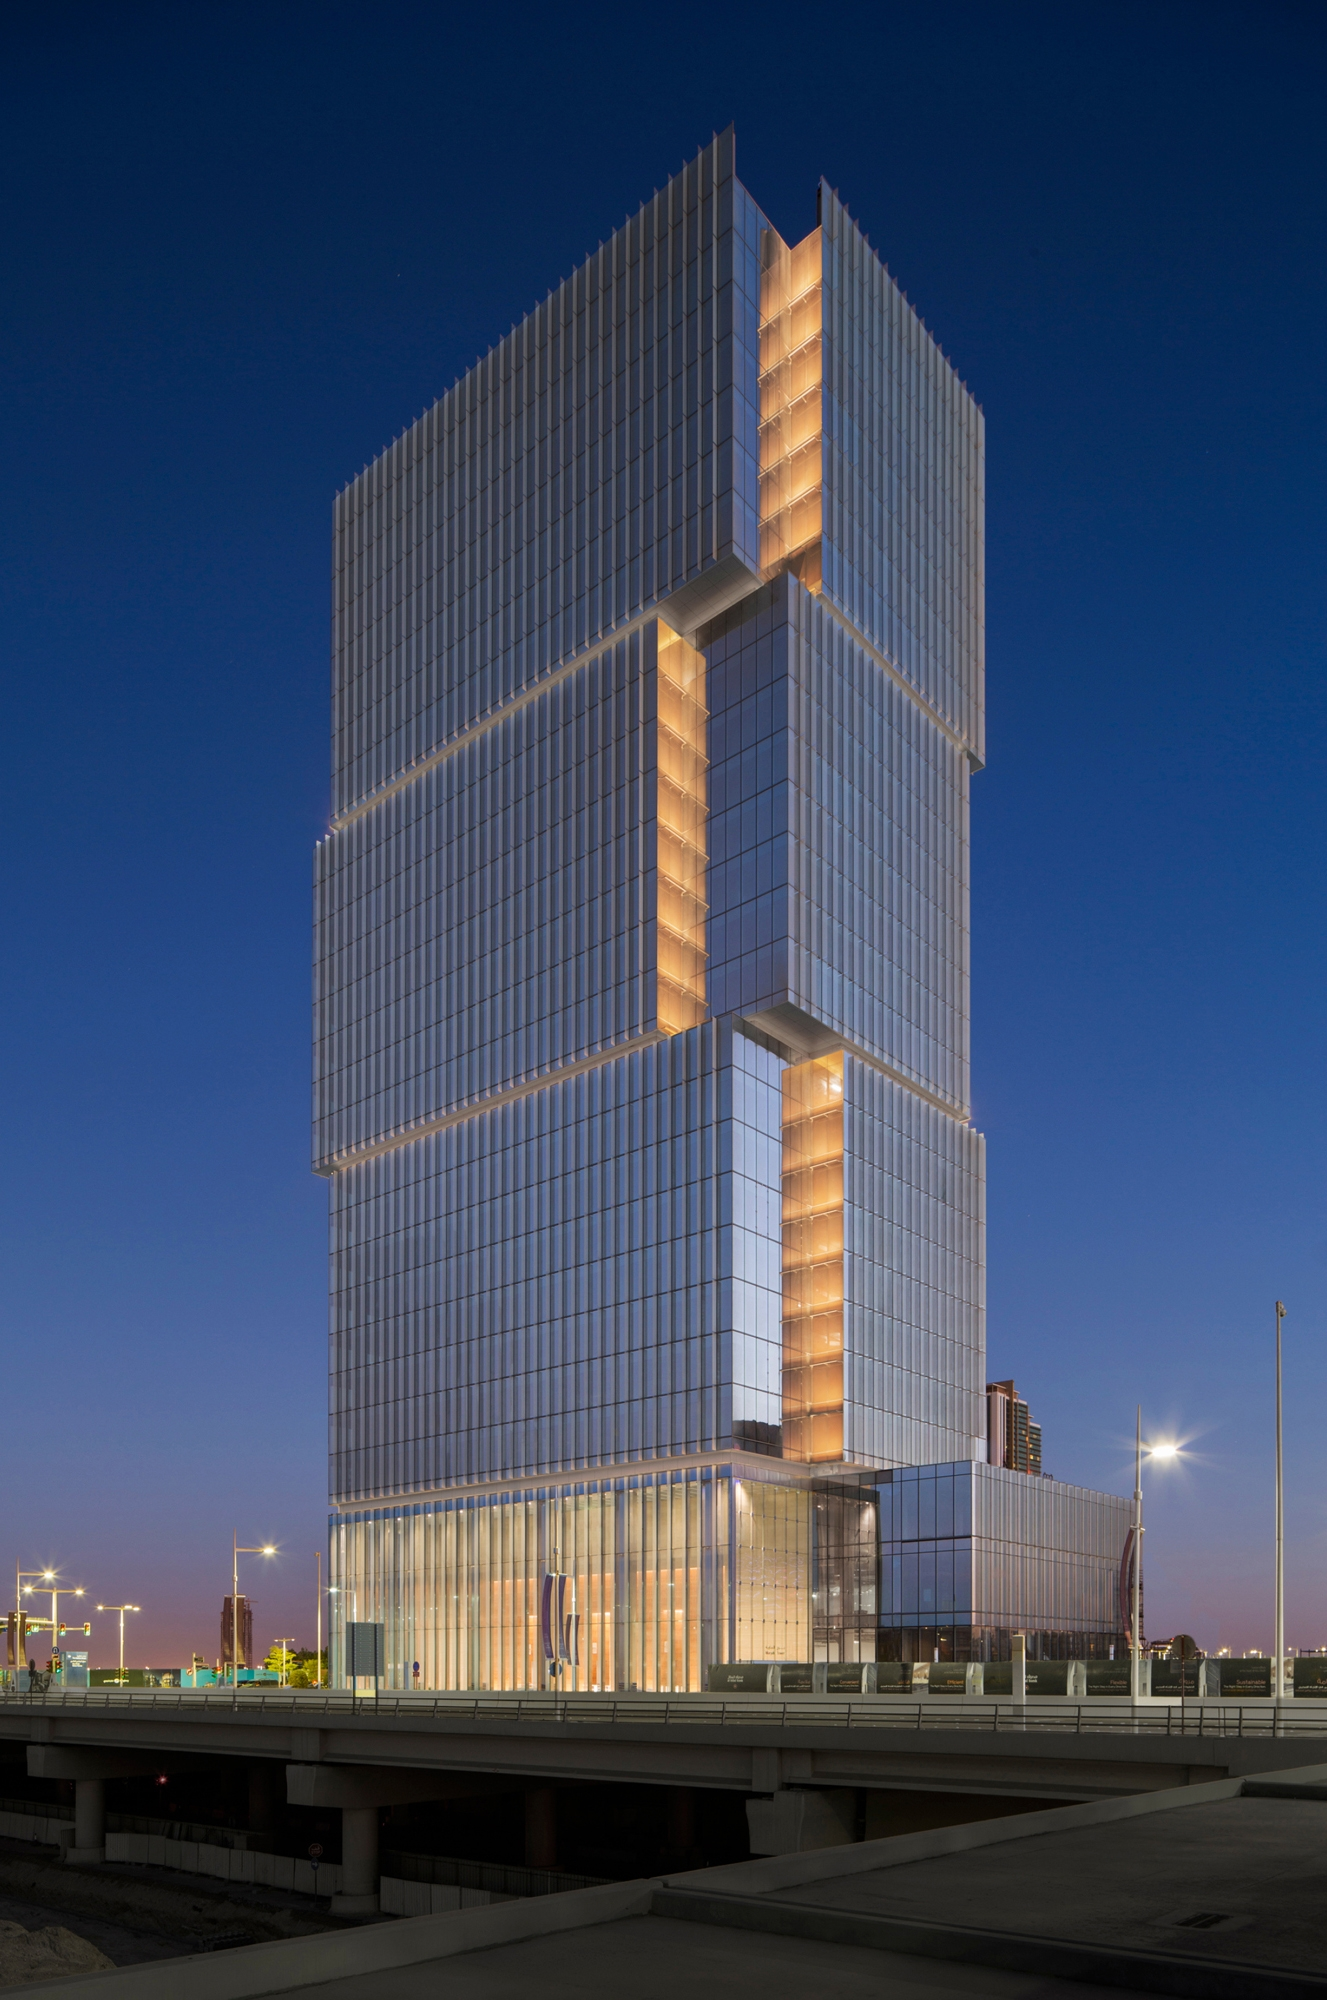 Al hilal bank office tower small project awards aia for Hispano international decor llc abu dhabi